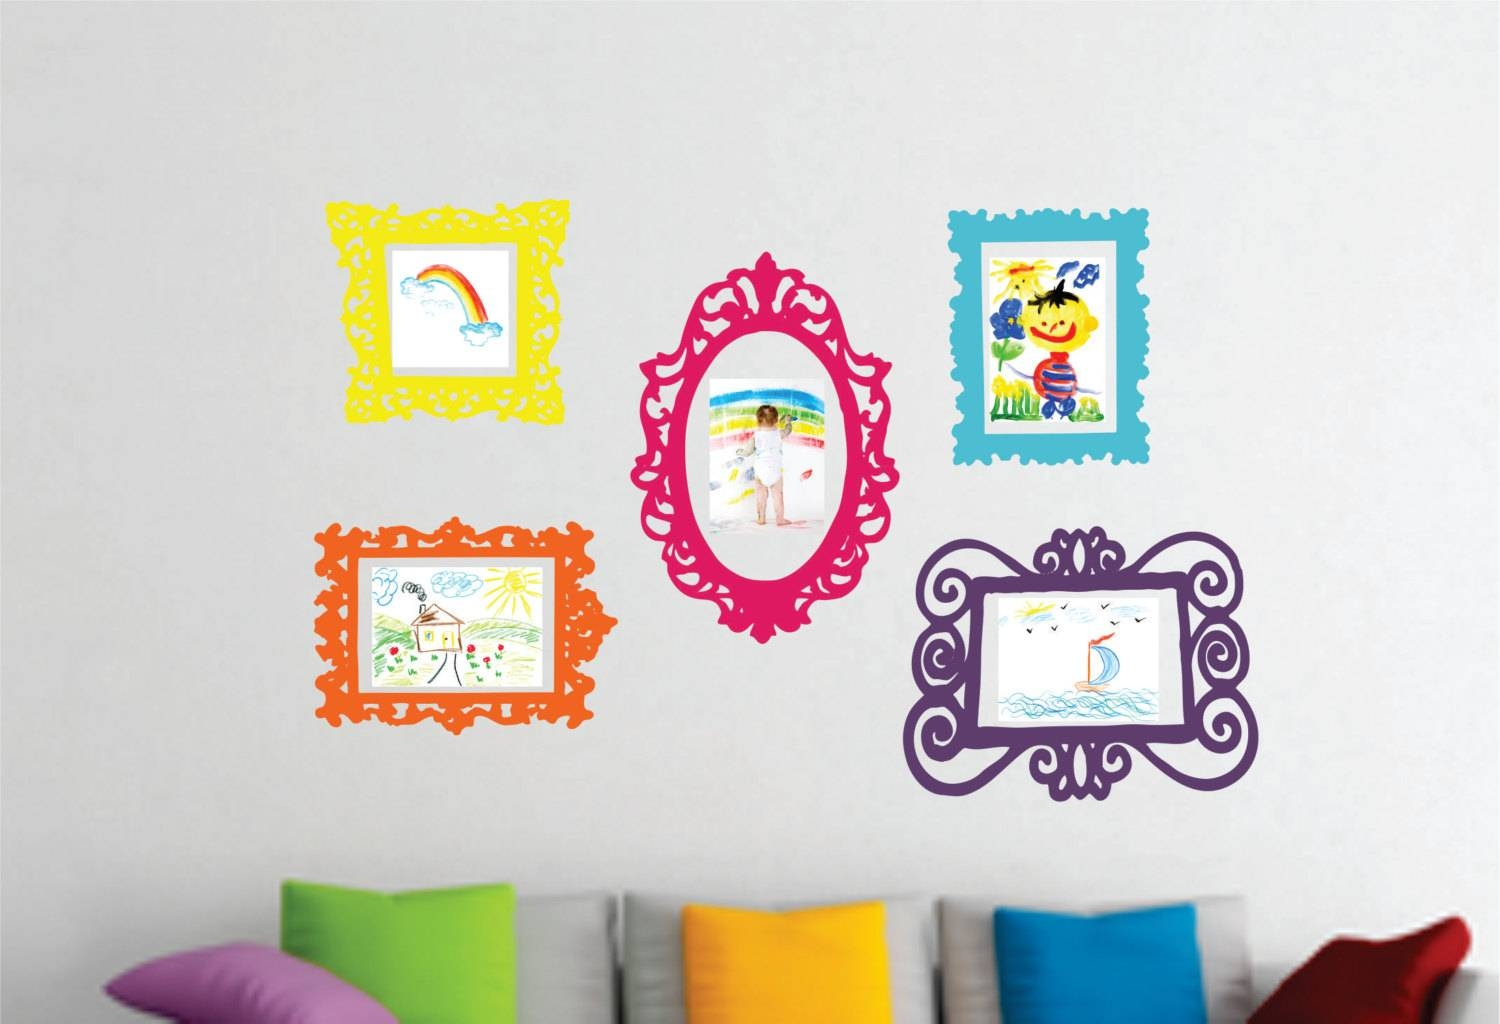 Wall Decal Set Of 5 Frames Playroom Decor Bedroom Wall Within Most Up To Date Playroom Wall Art (View 7 of 30)